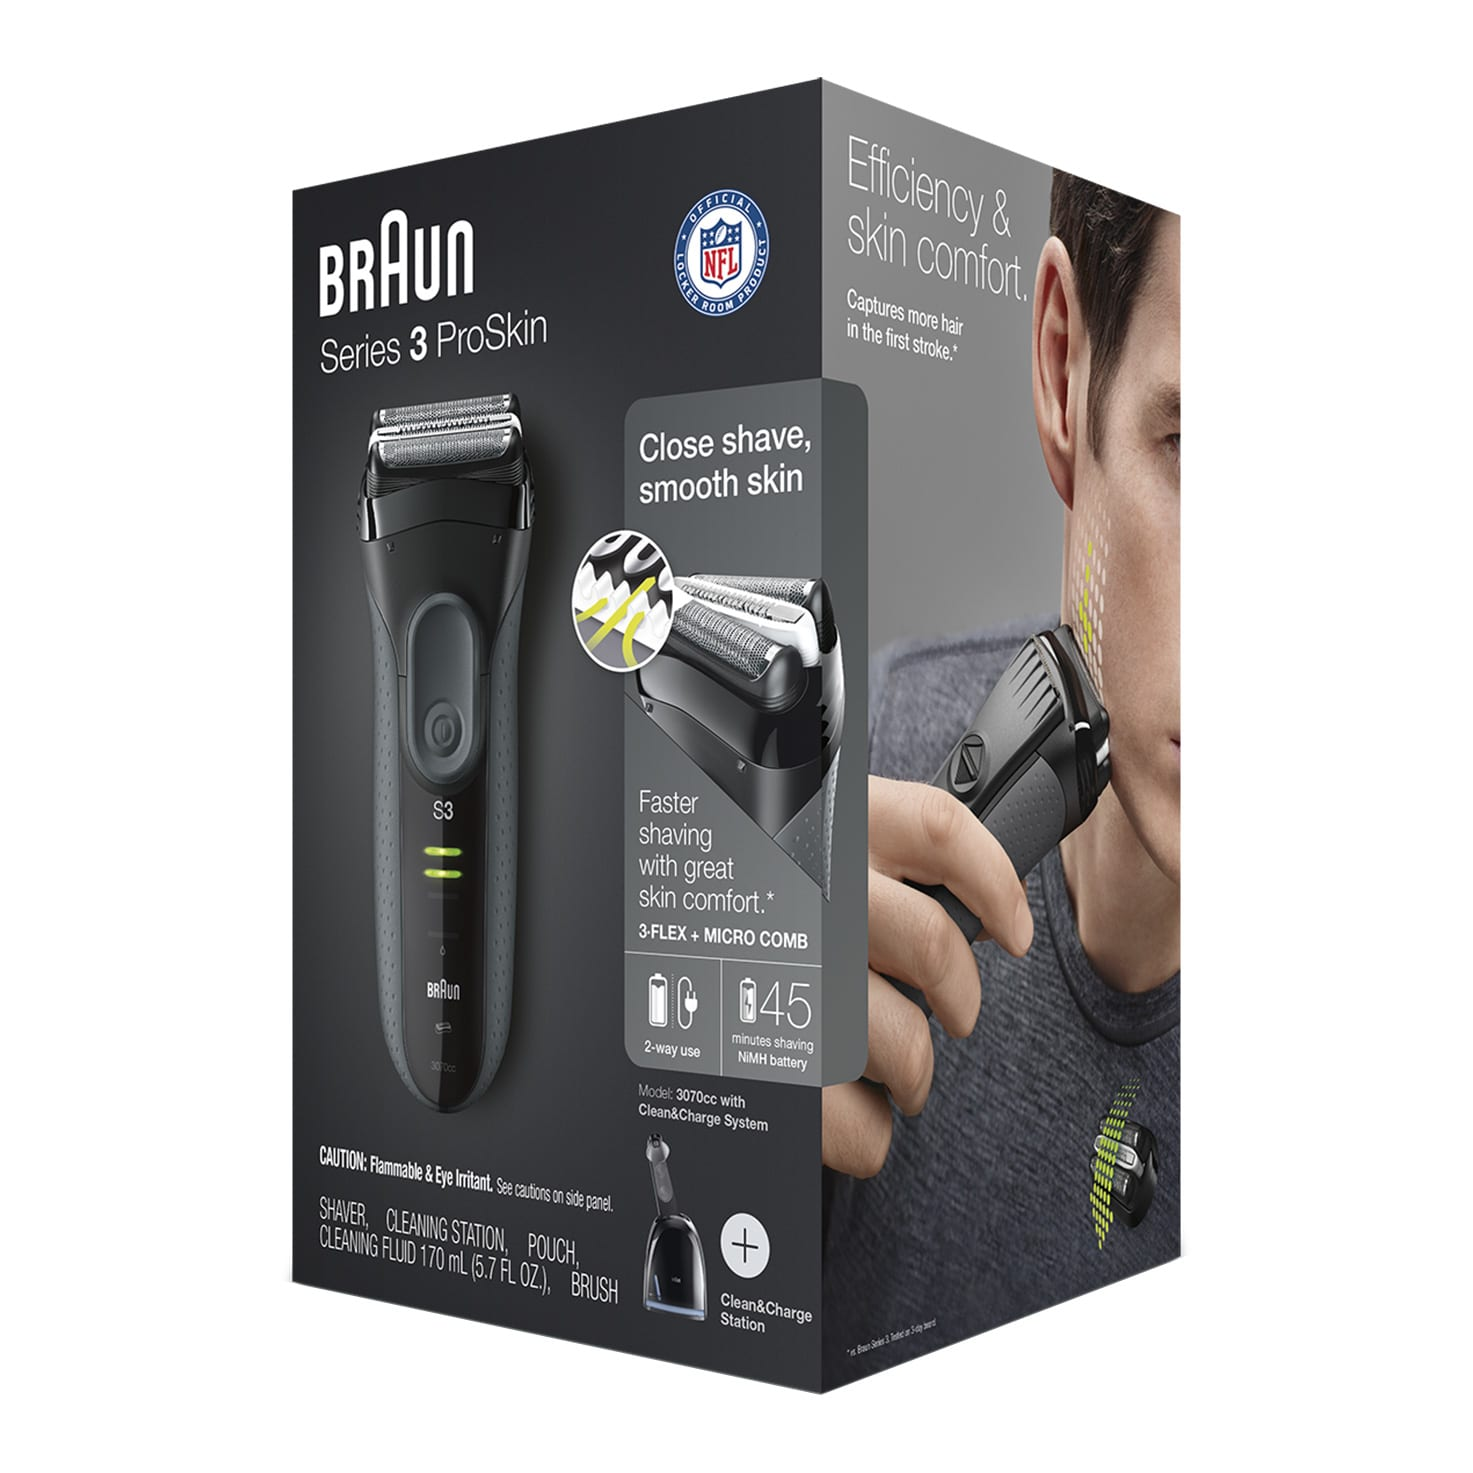 Series 3 ProSkin 3070cc shaver packaging